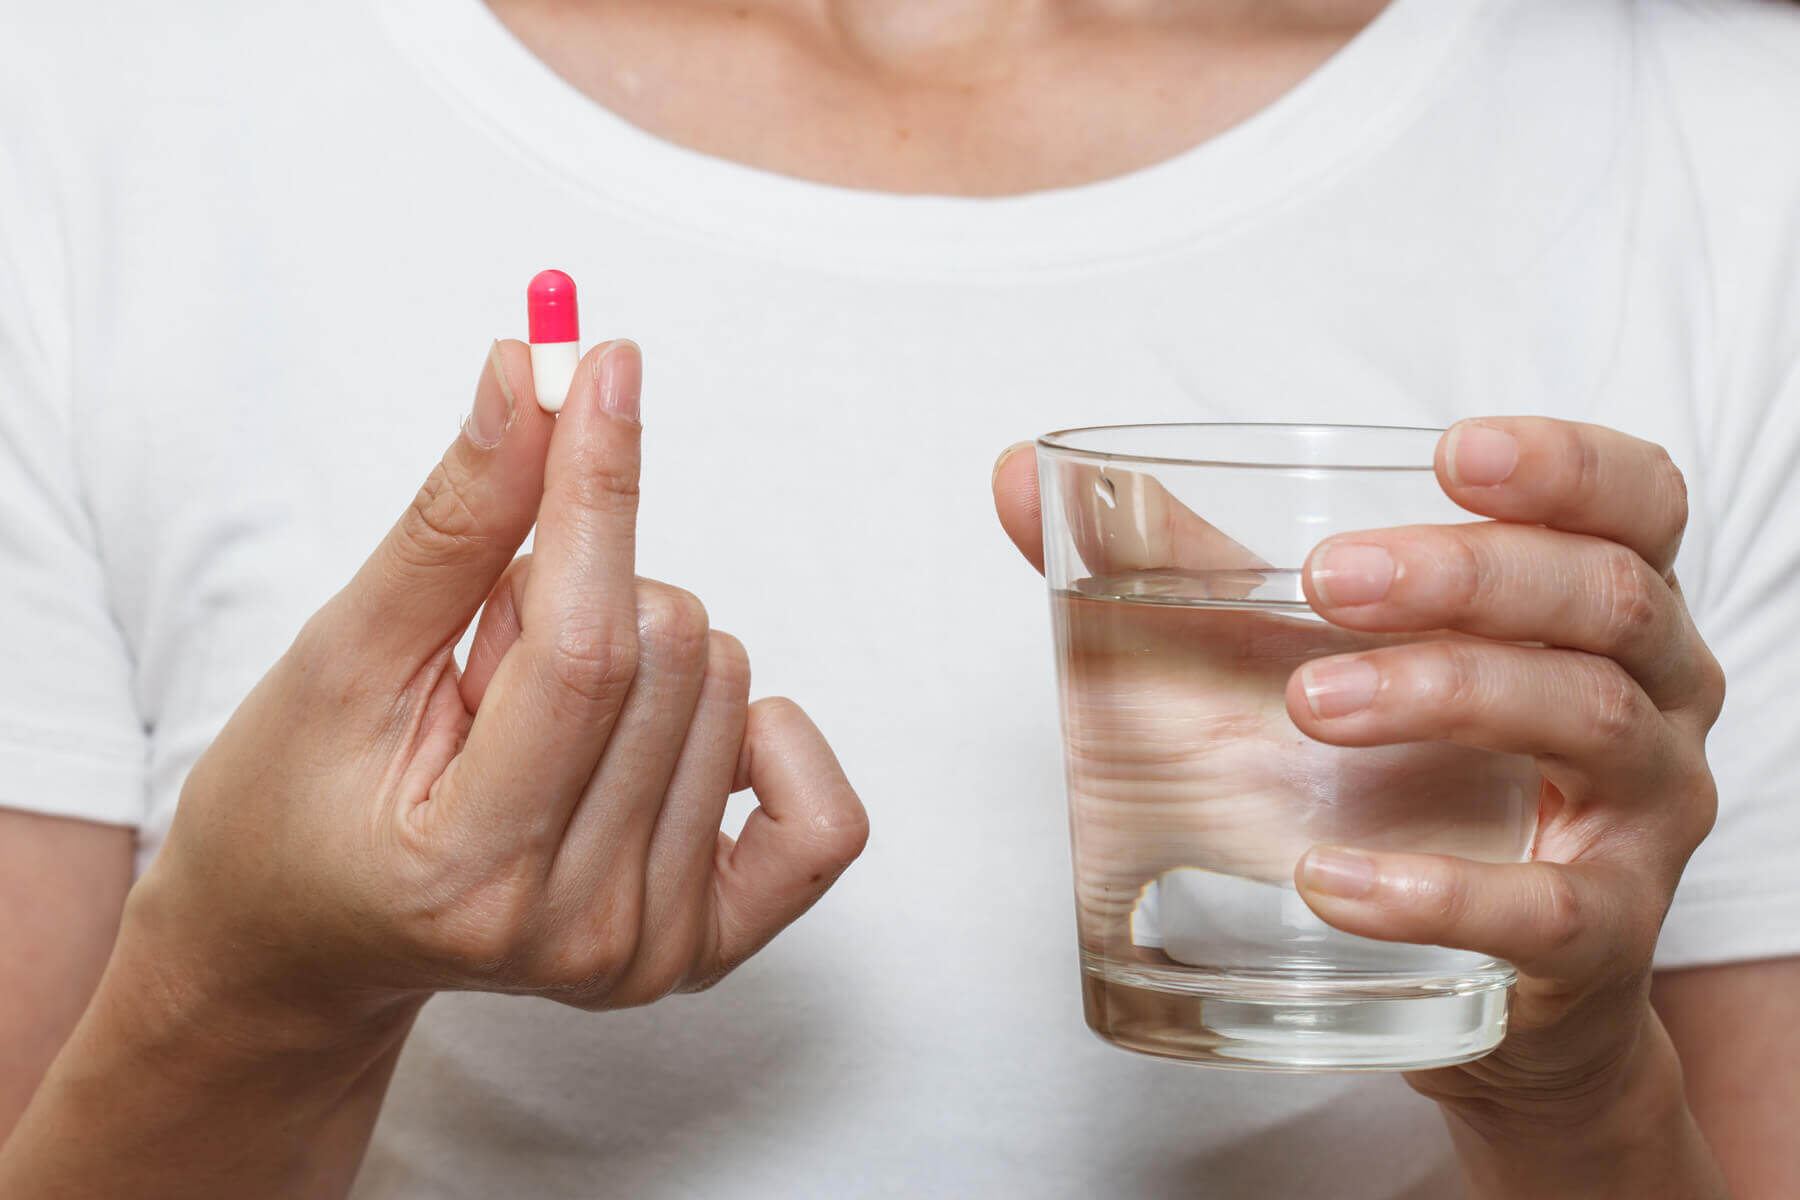 hands holding capsule pill and a glass of water